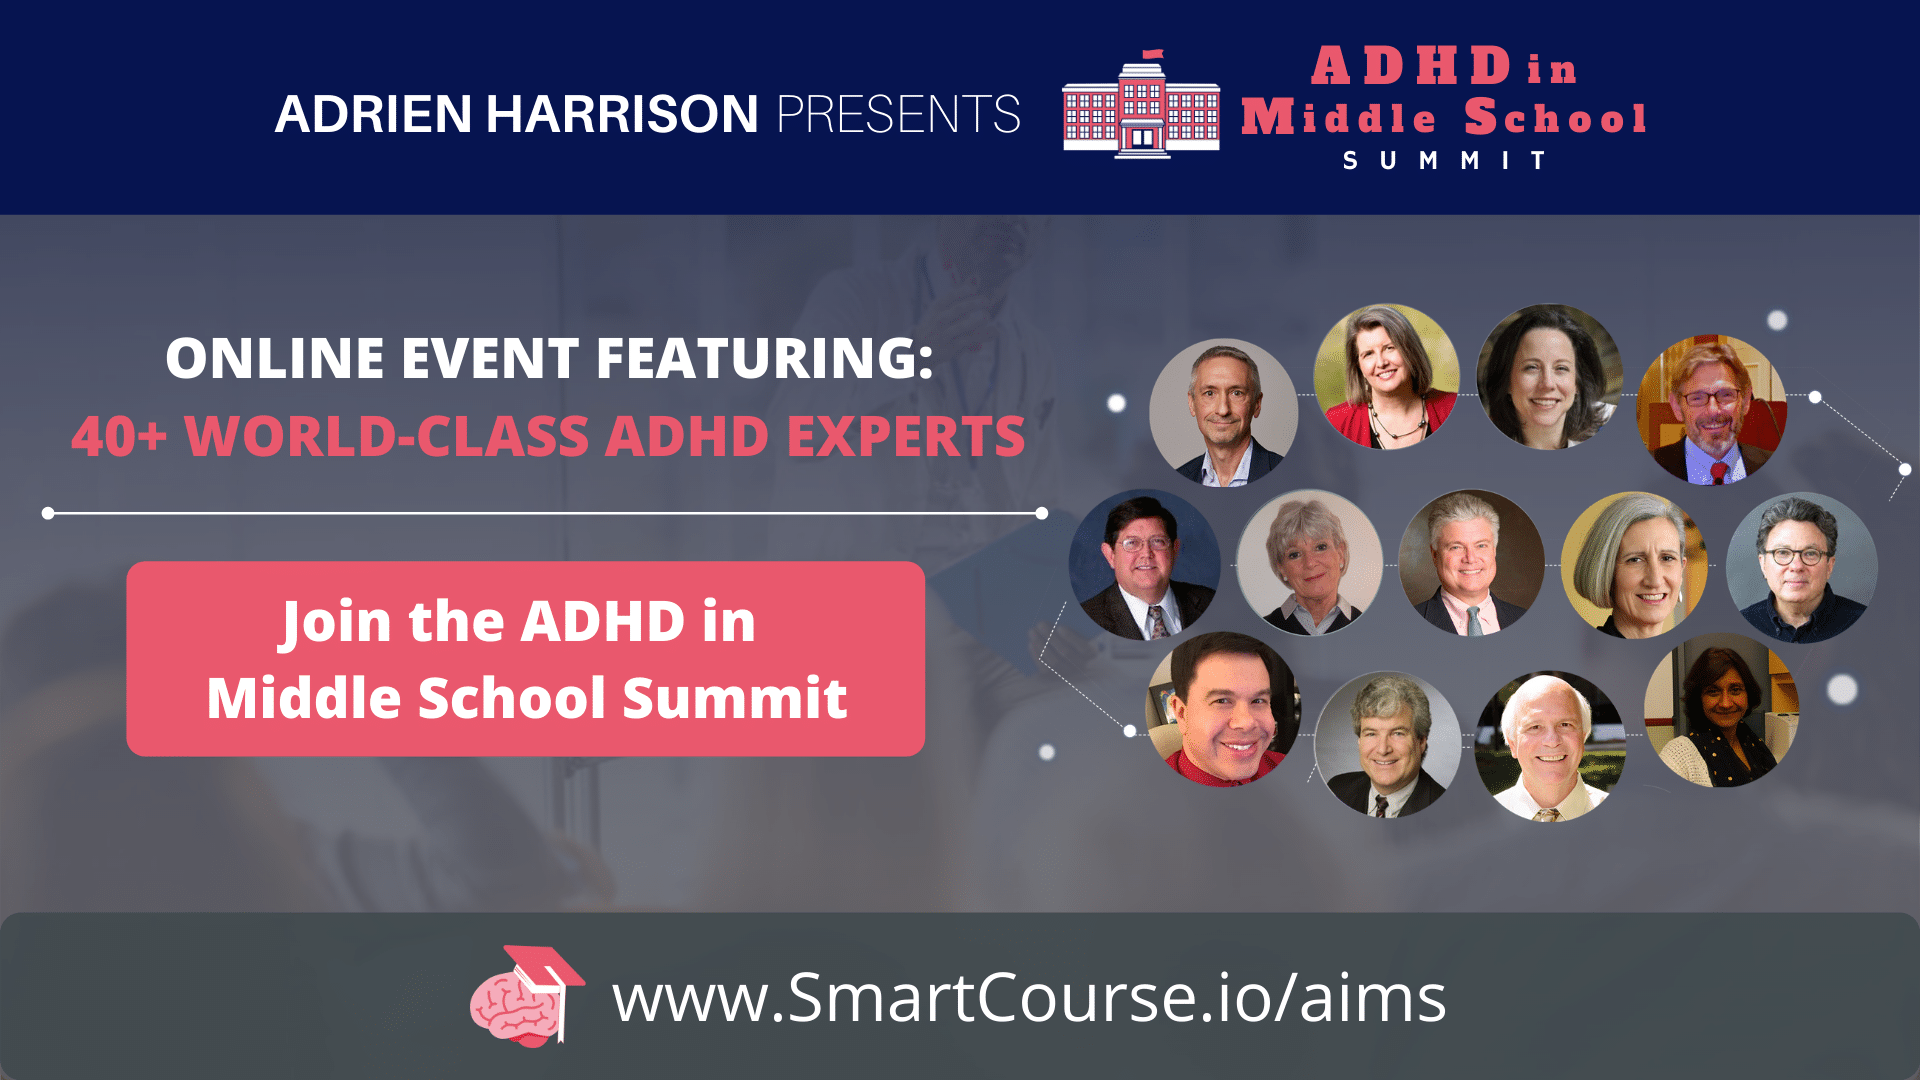 ADHD in Middle School Summit